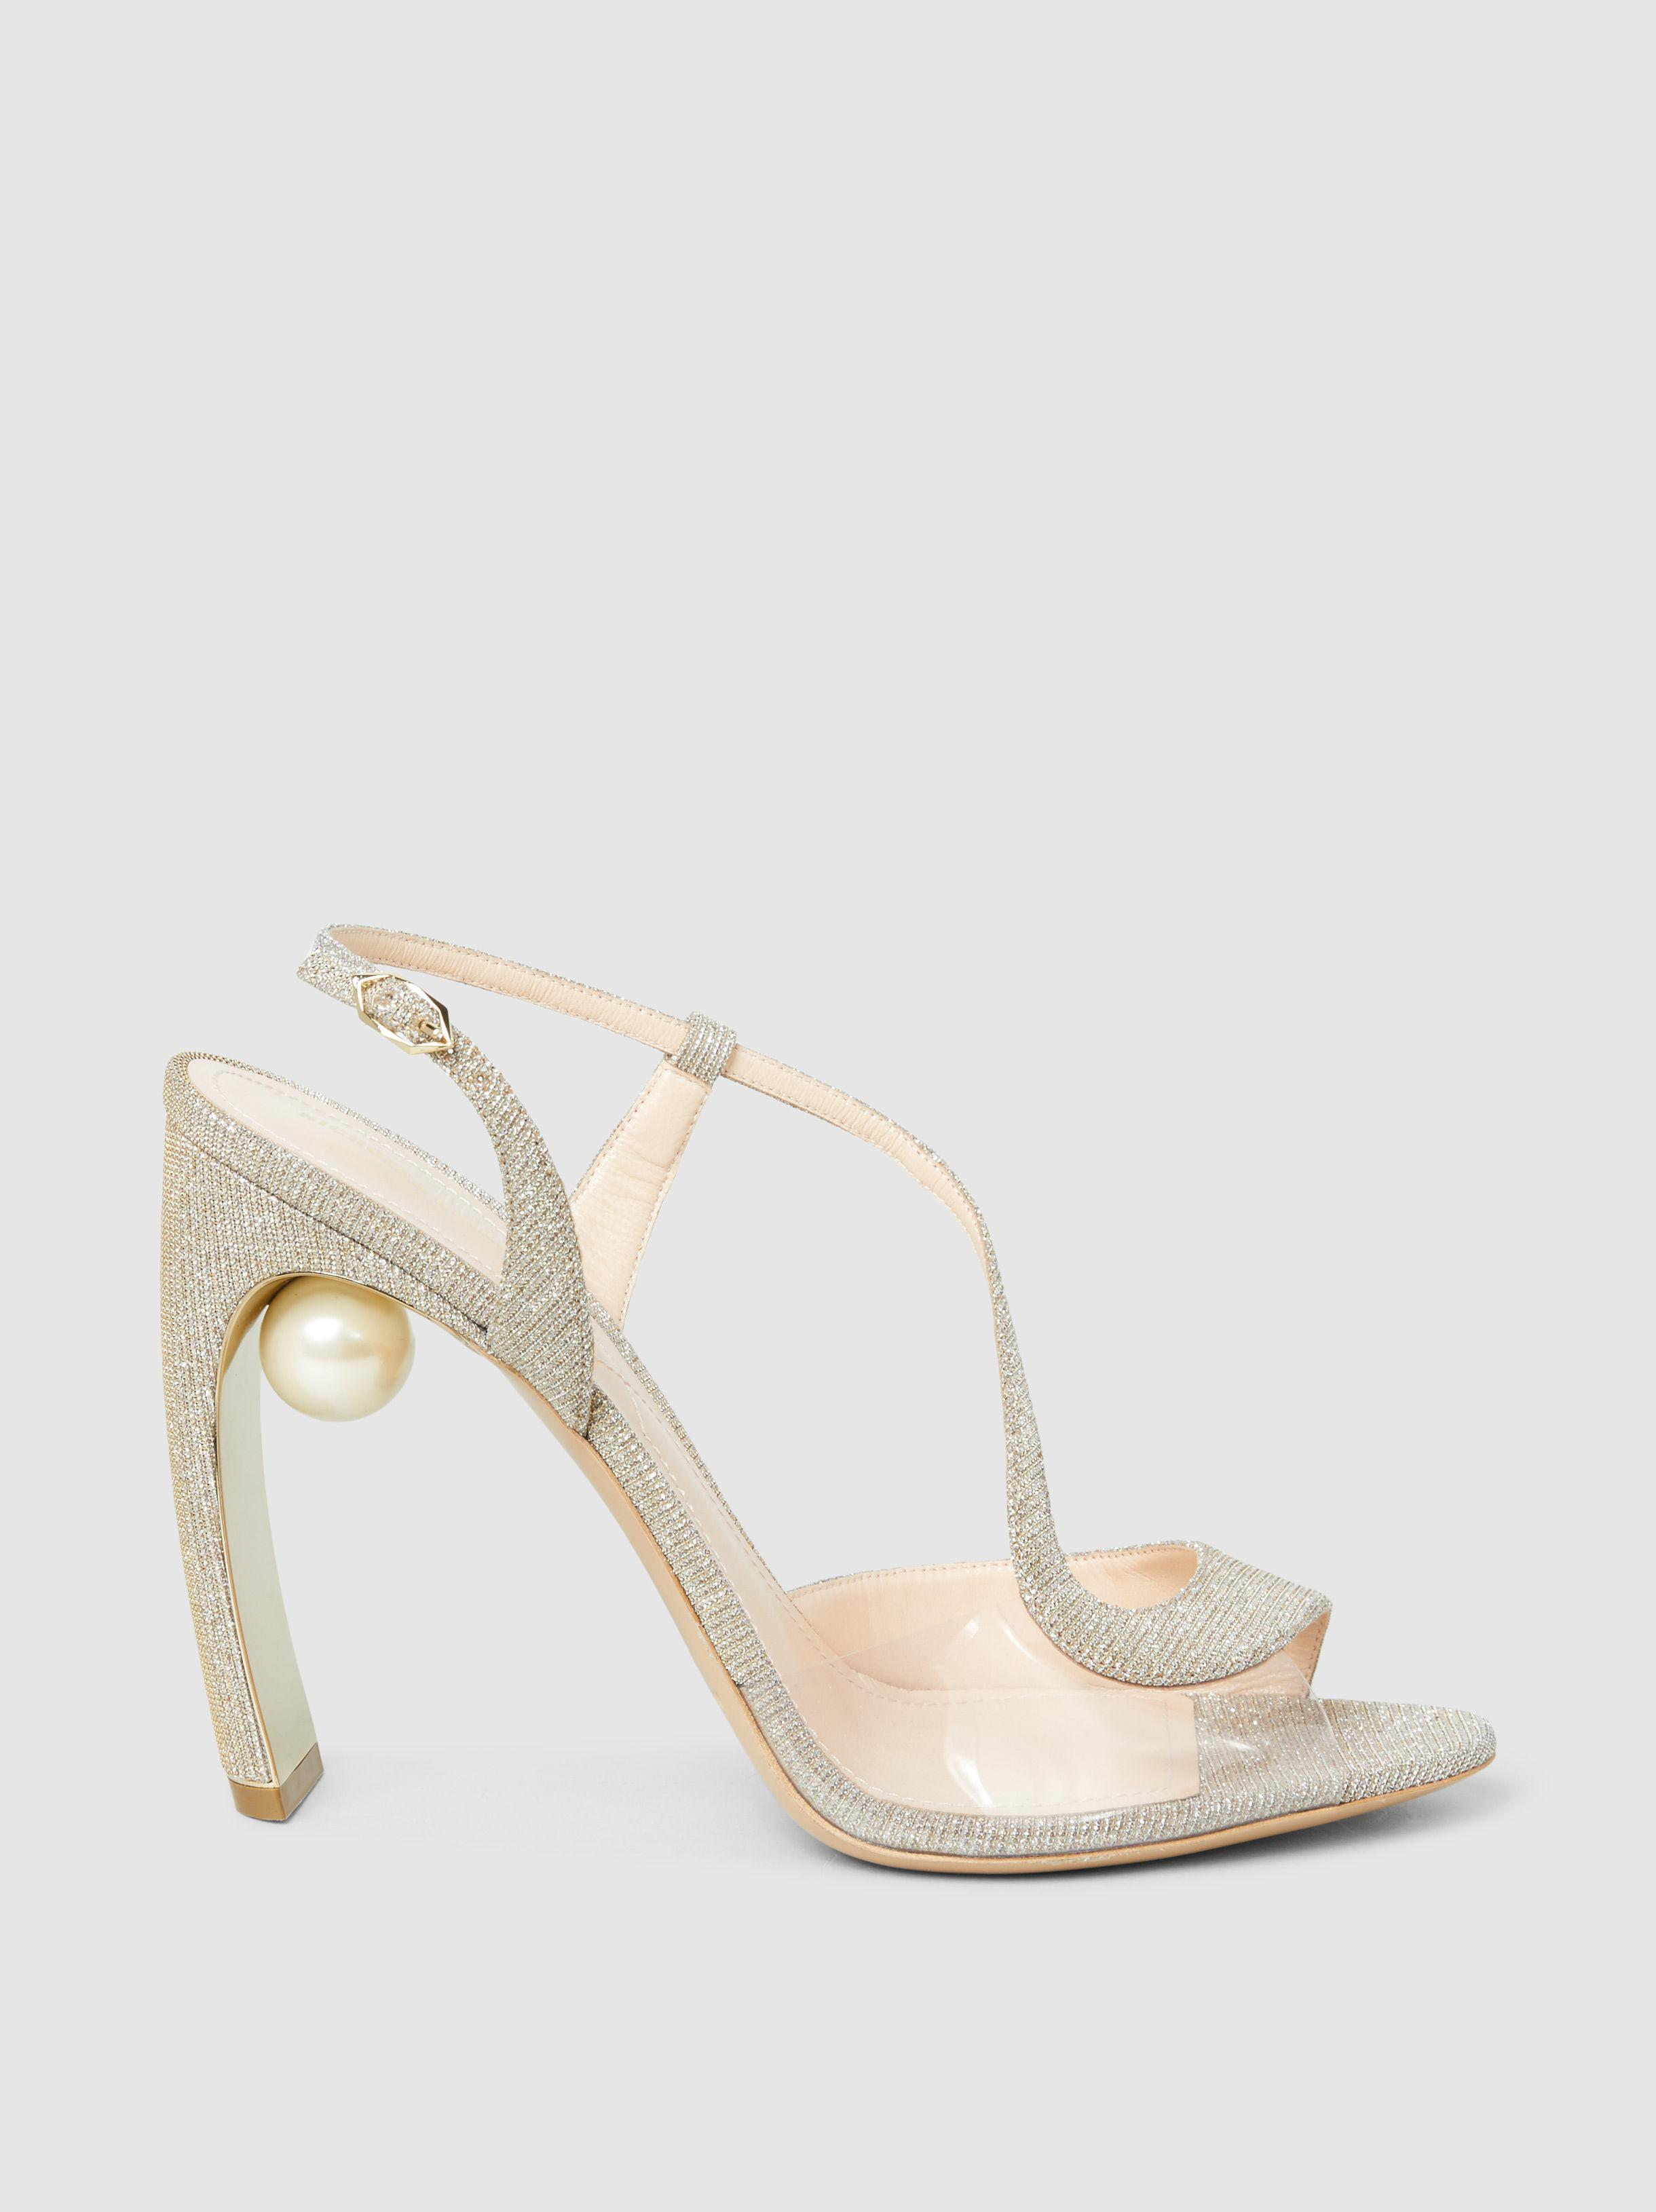 9349259c4 nicholas-kirkwood-Metallic-Maeva-Embellished-Glittered-Canvas-Sandals.jpeg